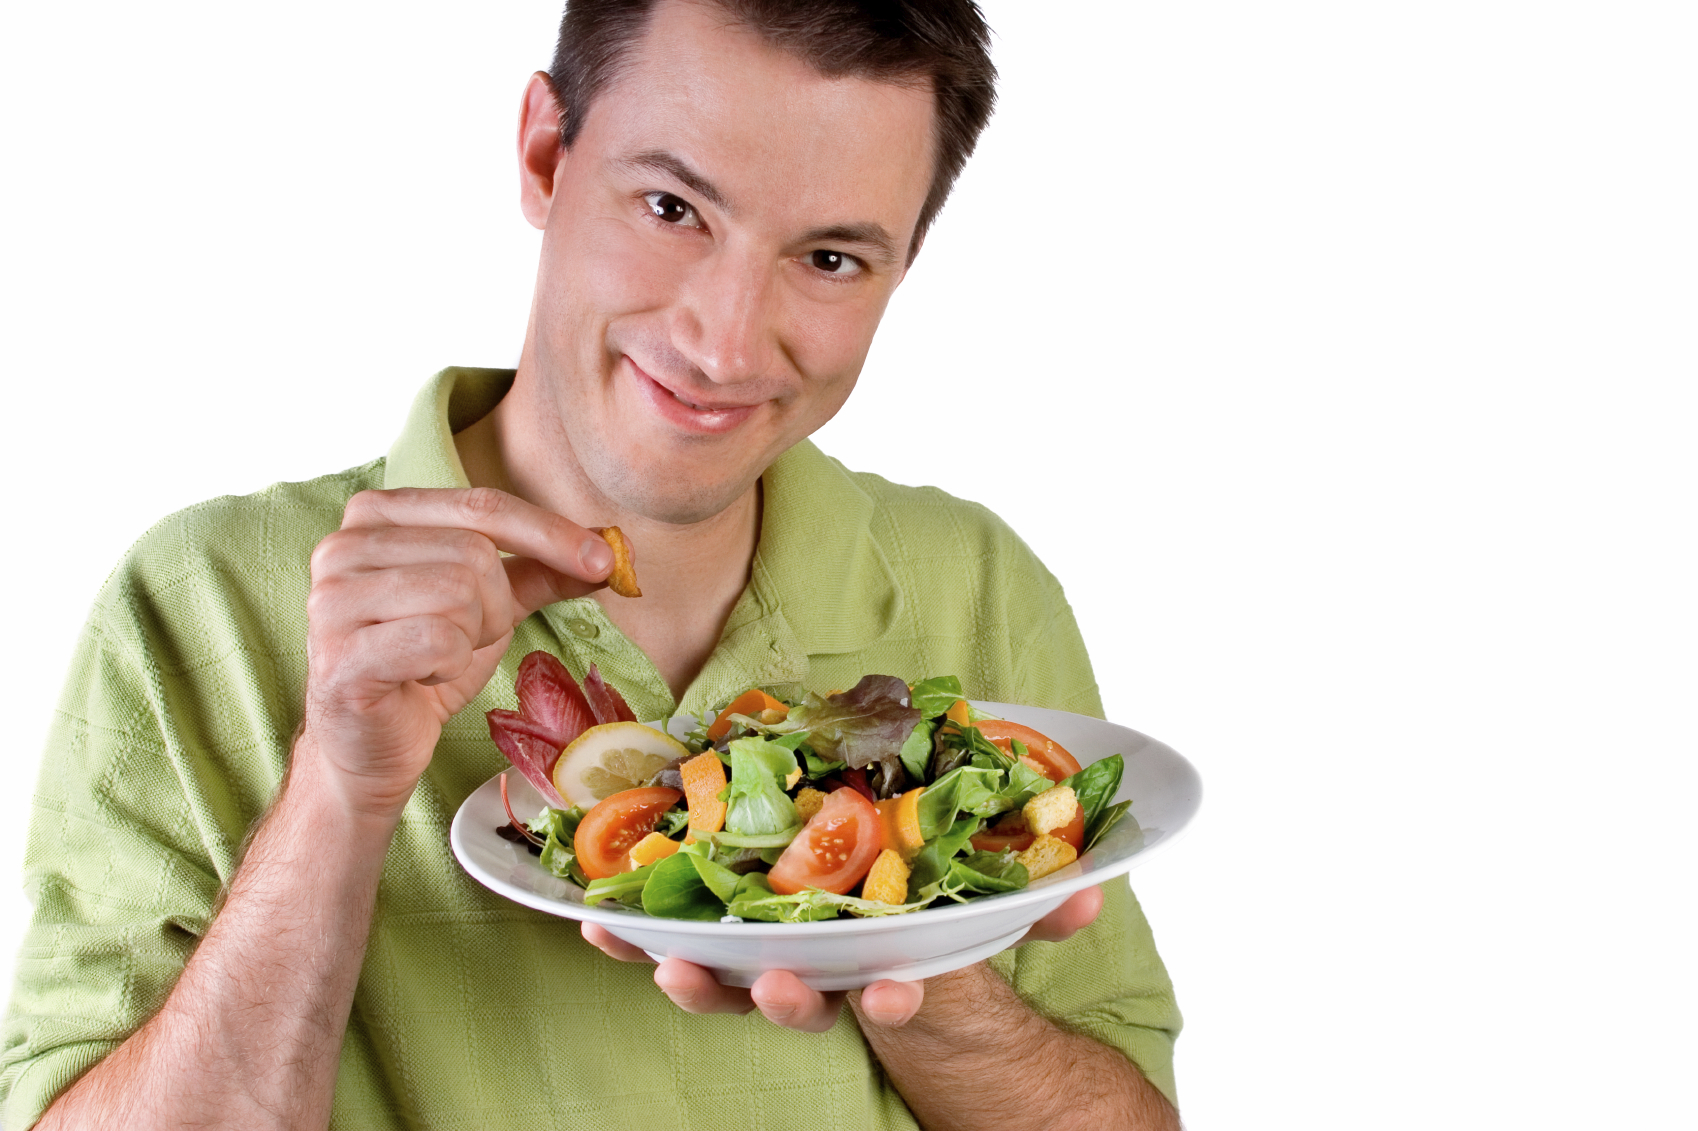 A smiling gentleman puts the finishing touch on his healthy salad.